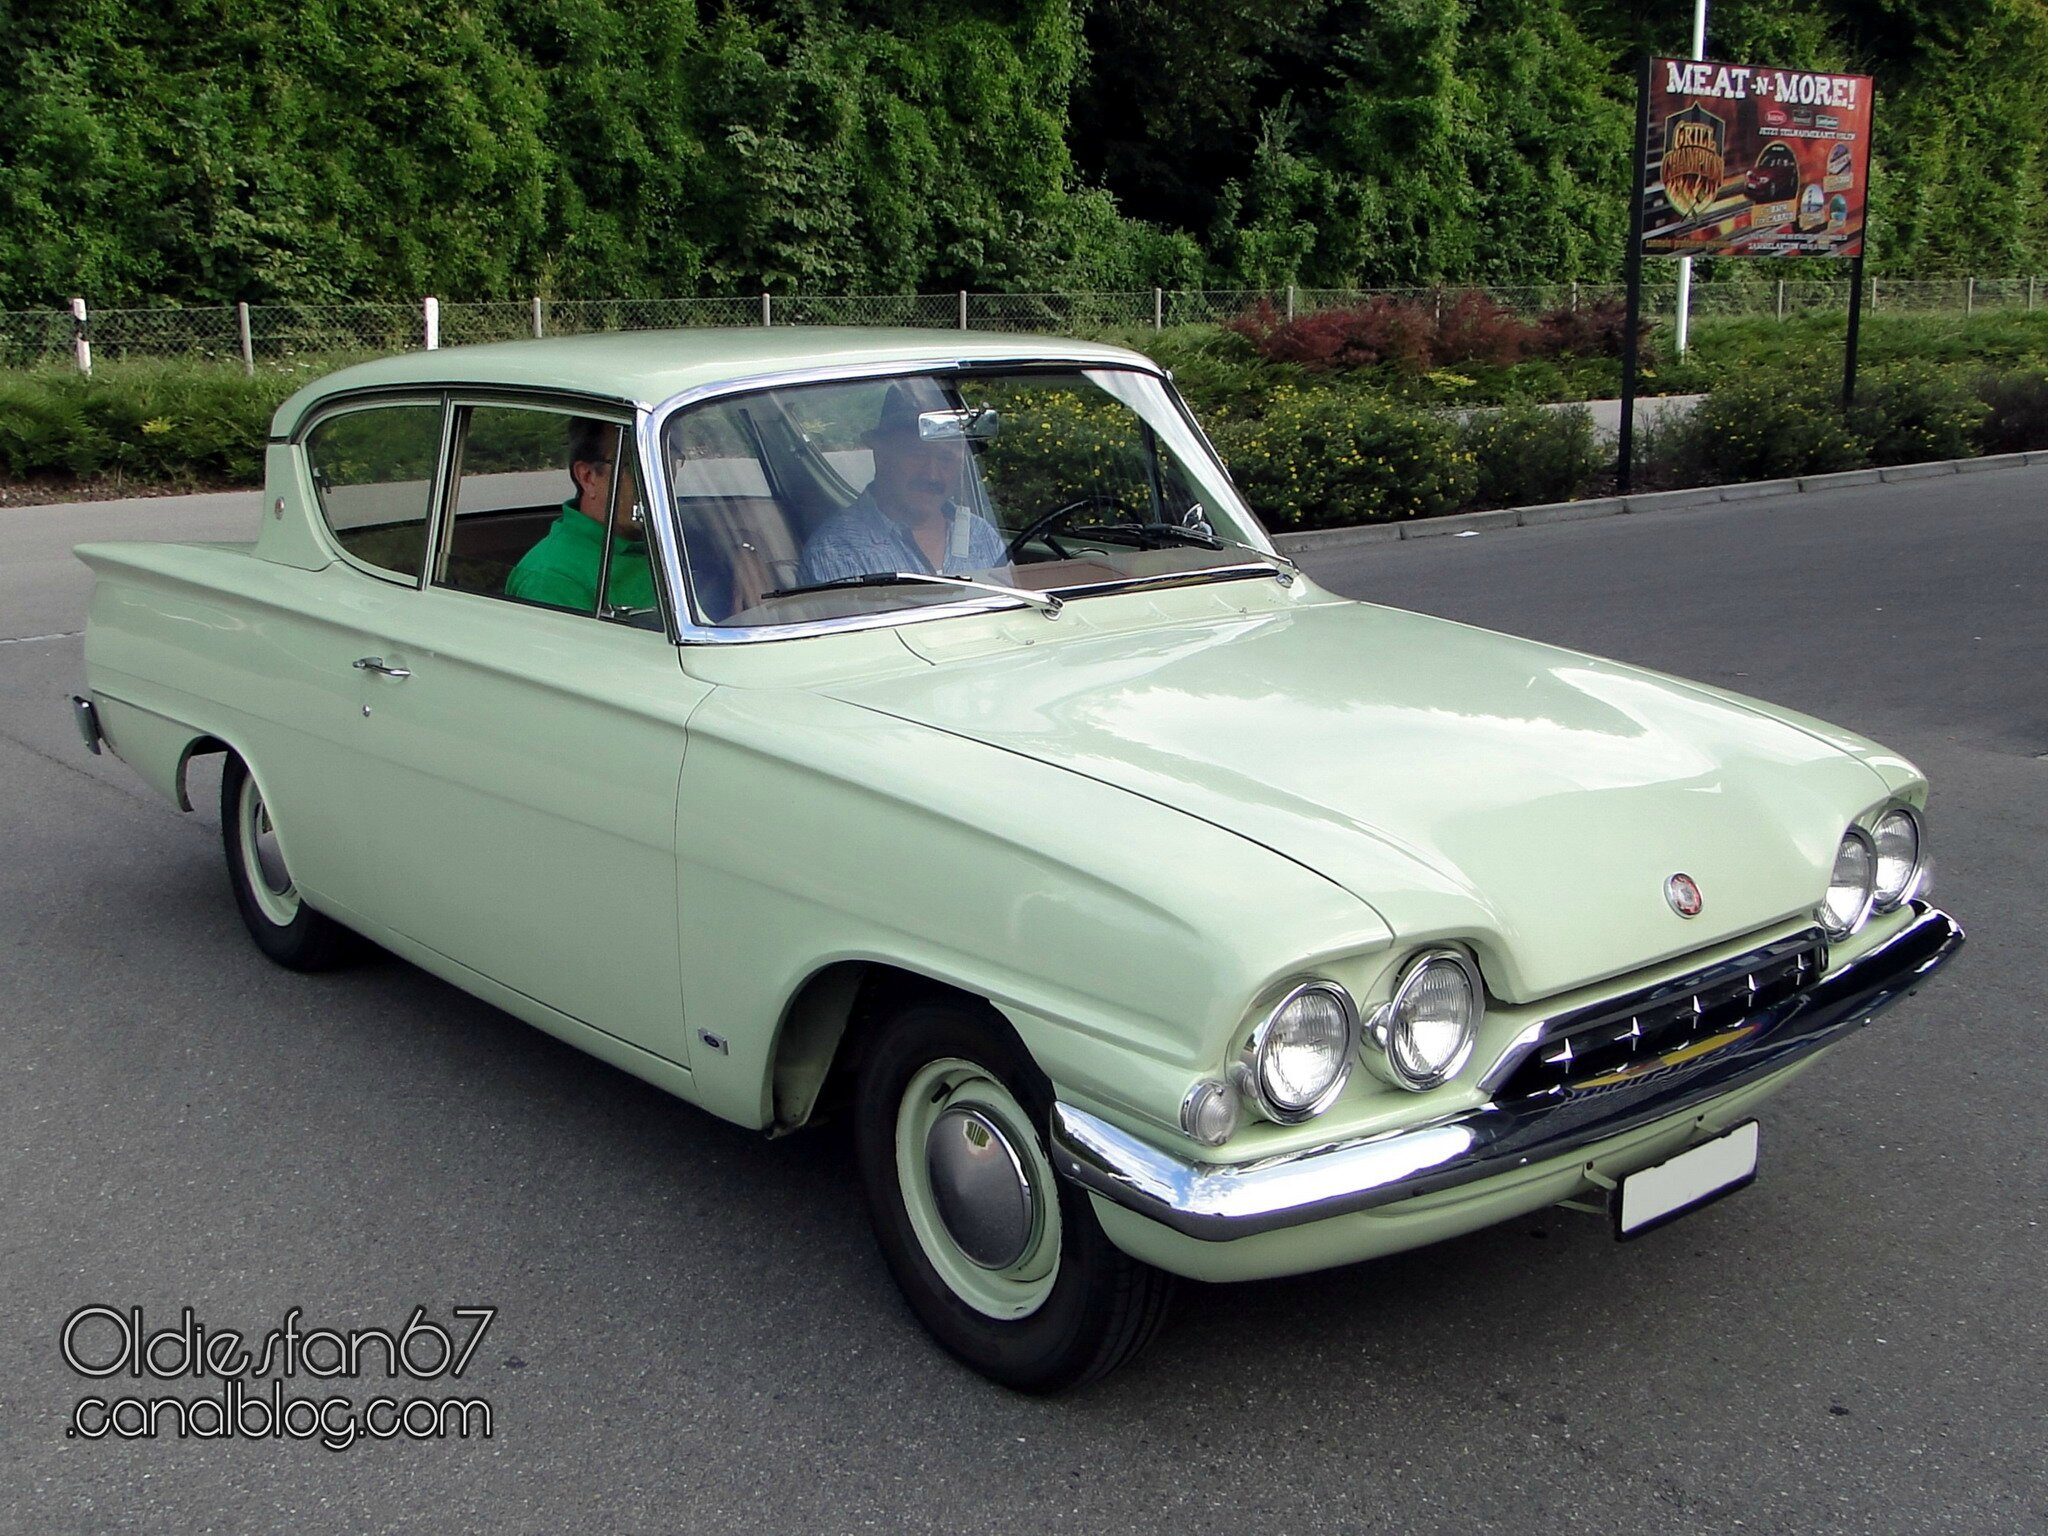 ford consul 315 2door saloon 1961 1963 oldiesfan67 mon blog auto. Black Bedroom Furniture Sets. Home Design Ideas